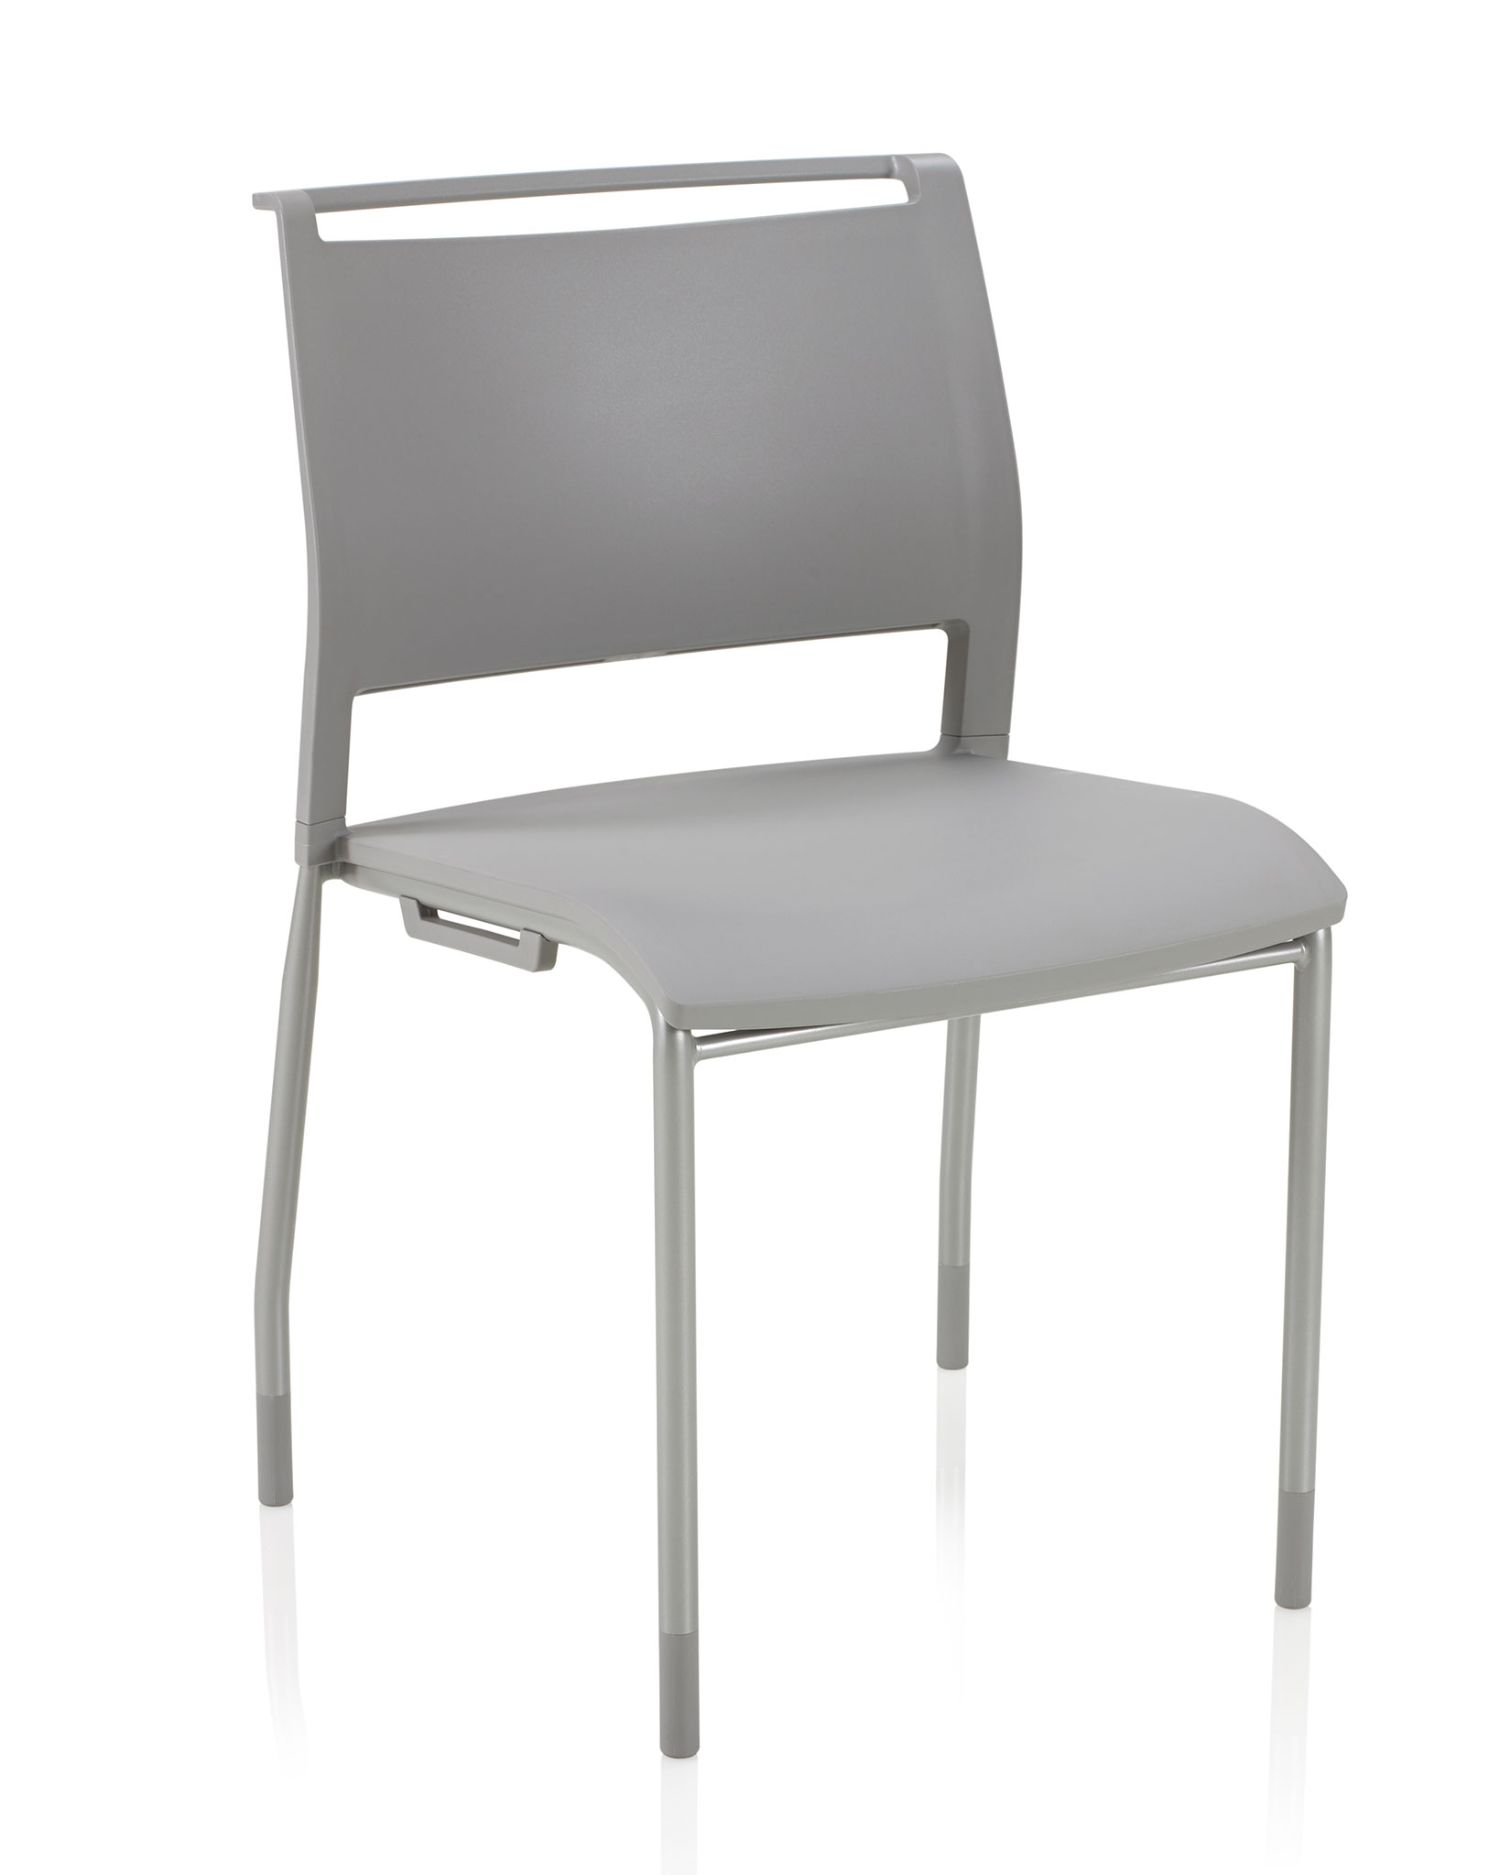 ki opt4 stack chair in stone gray